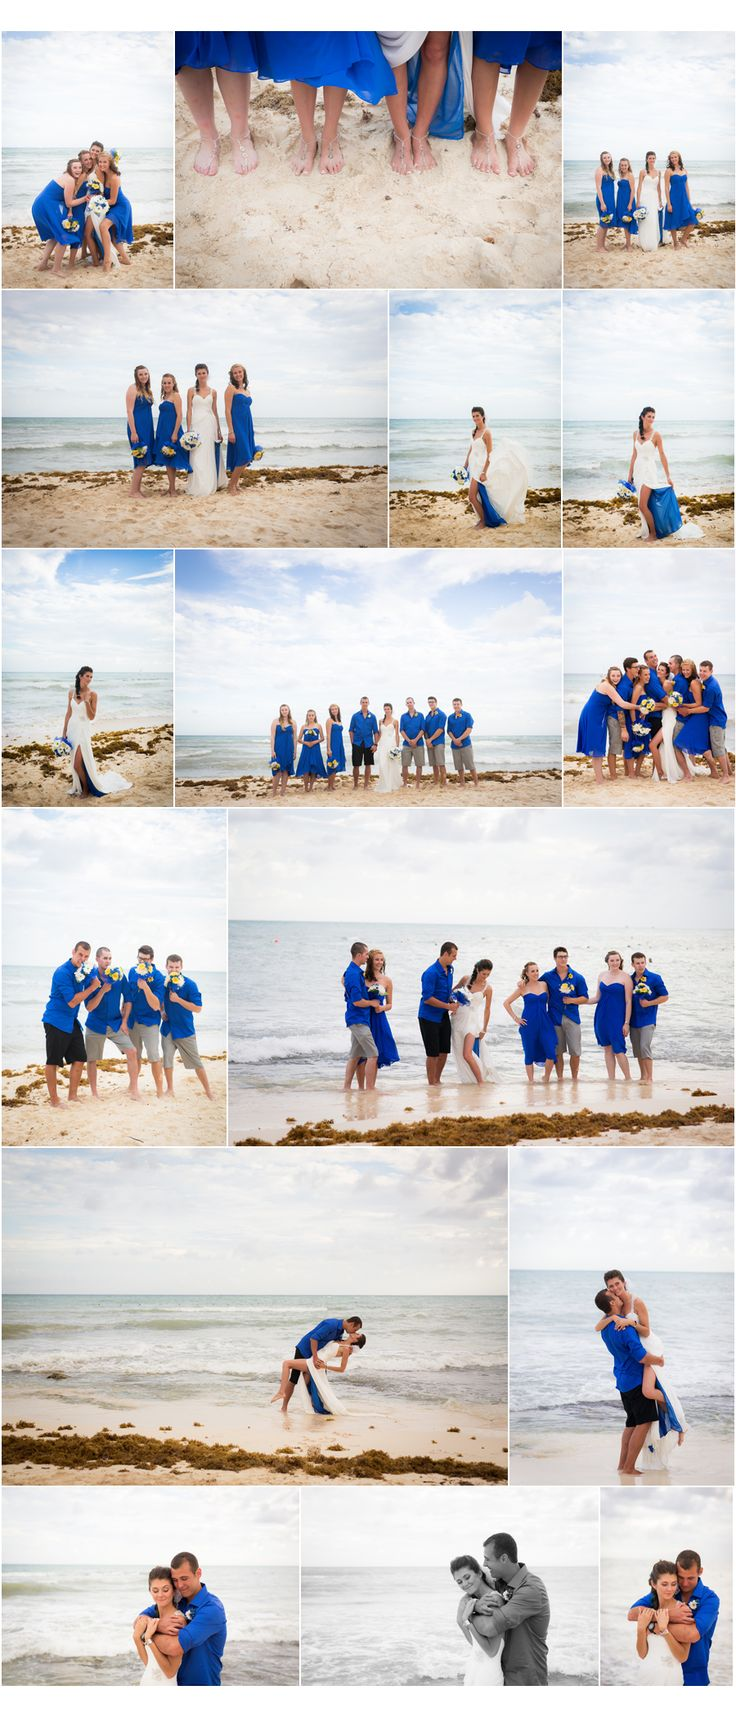 Sandos Caracol Eco Resort Wedding, Destination Wedding, Blue bridesmaid dresses, Fun Wedding Photos, Destination Wedding Photographer